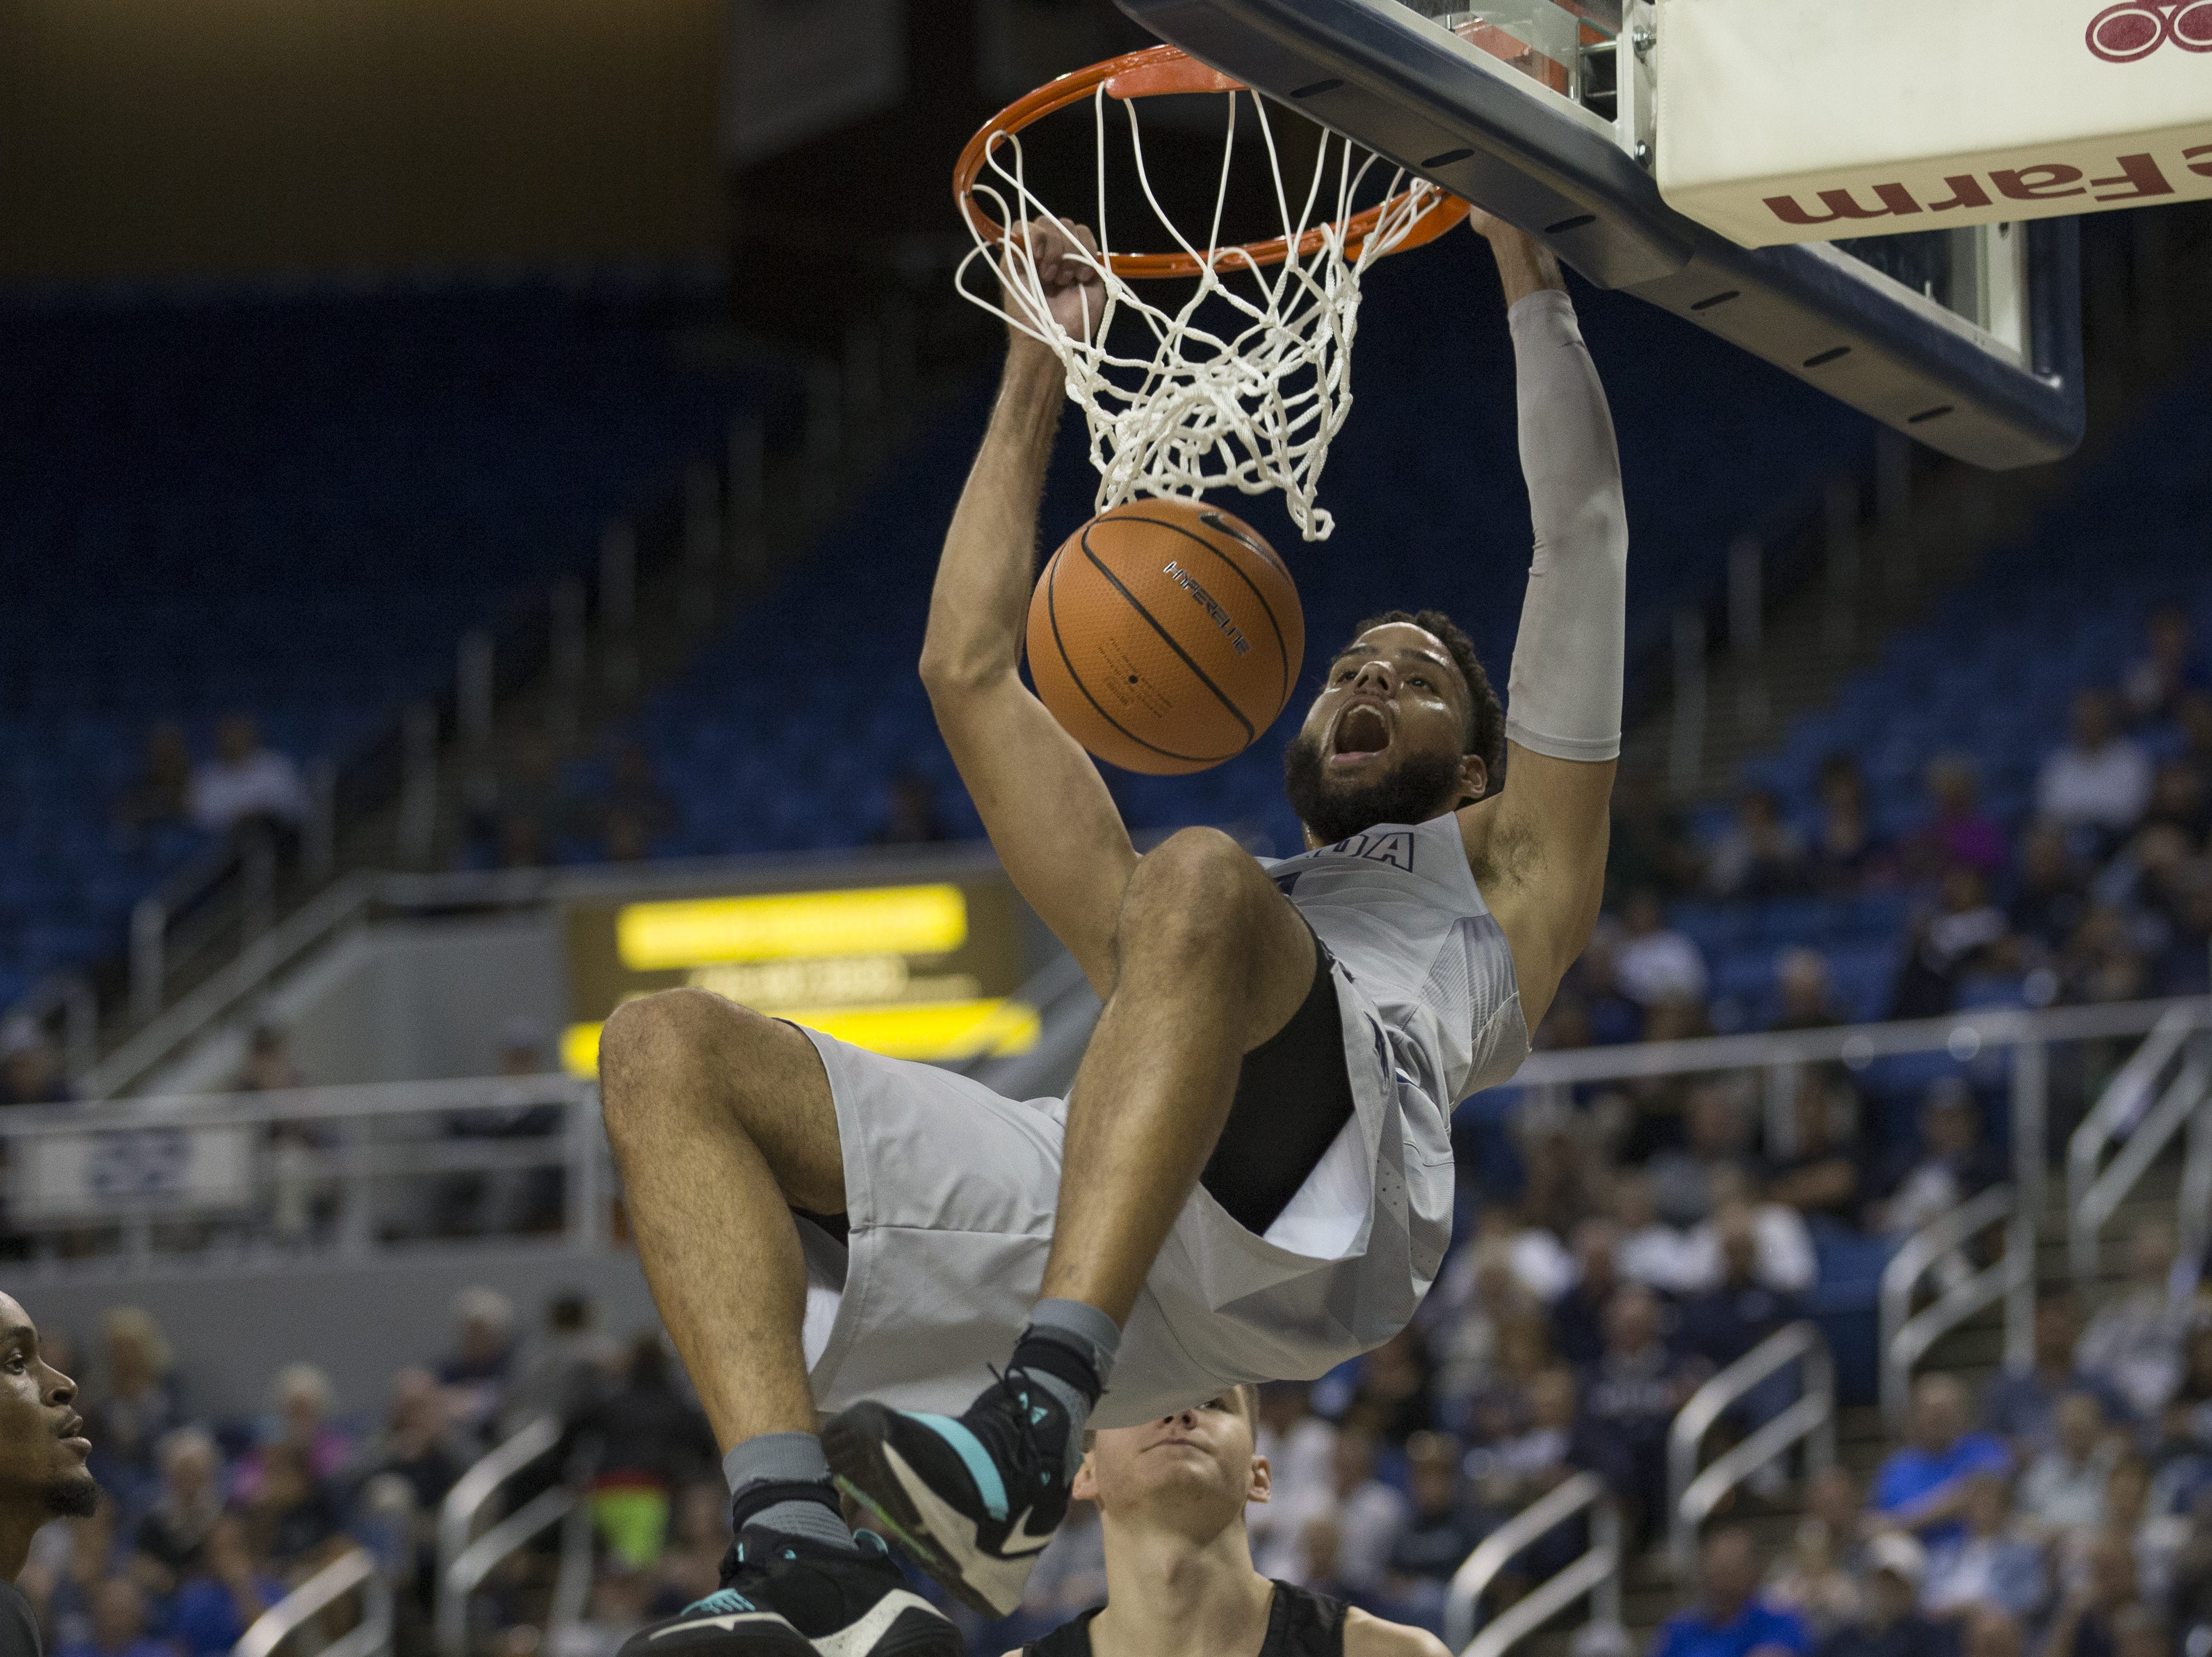 Nevada's Cody Martin dunks the ball against Grand Canyon in their NCAA basketball game held at the Lawlor Events Center on Sunday, Oct. 22, 2017 in Reno, Nevada.